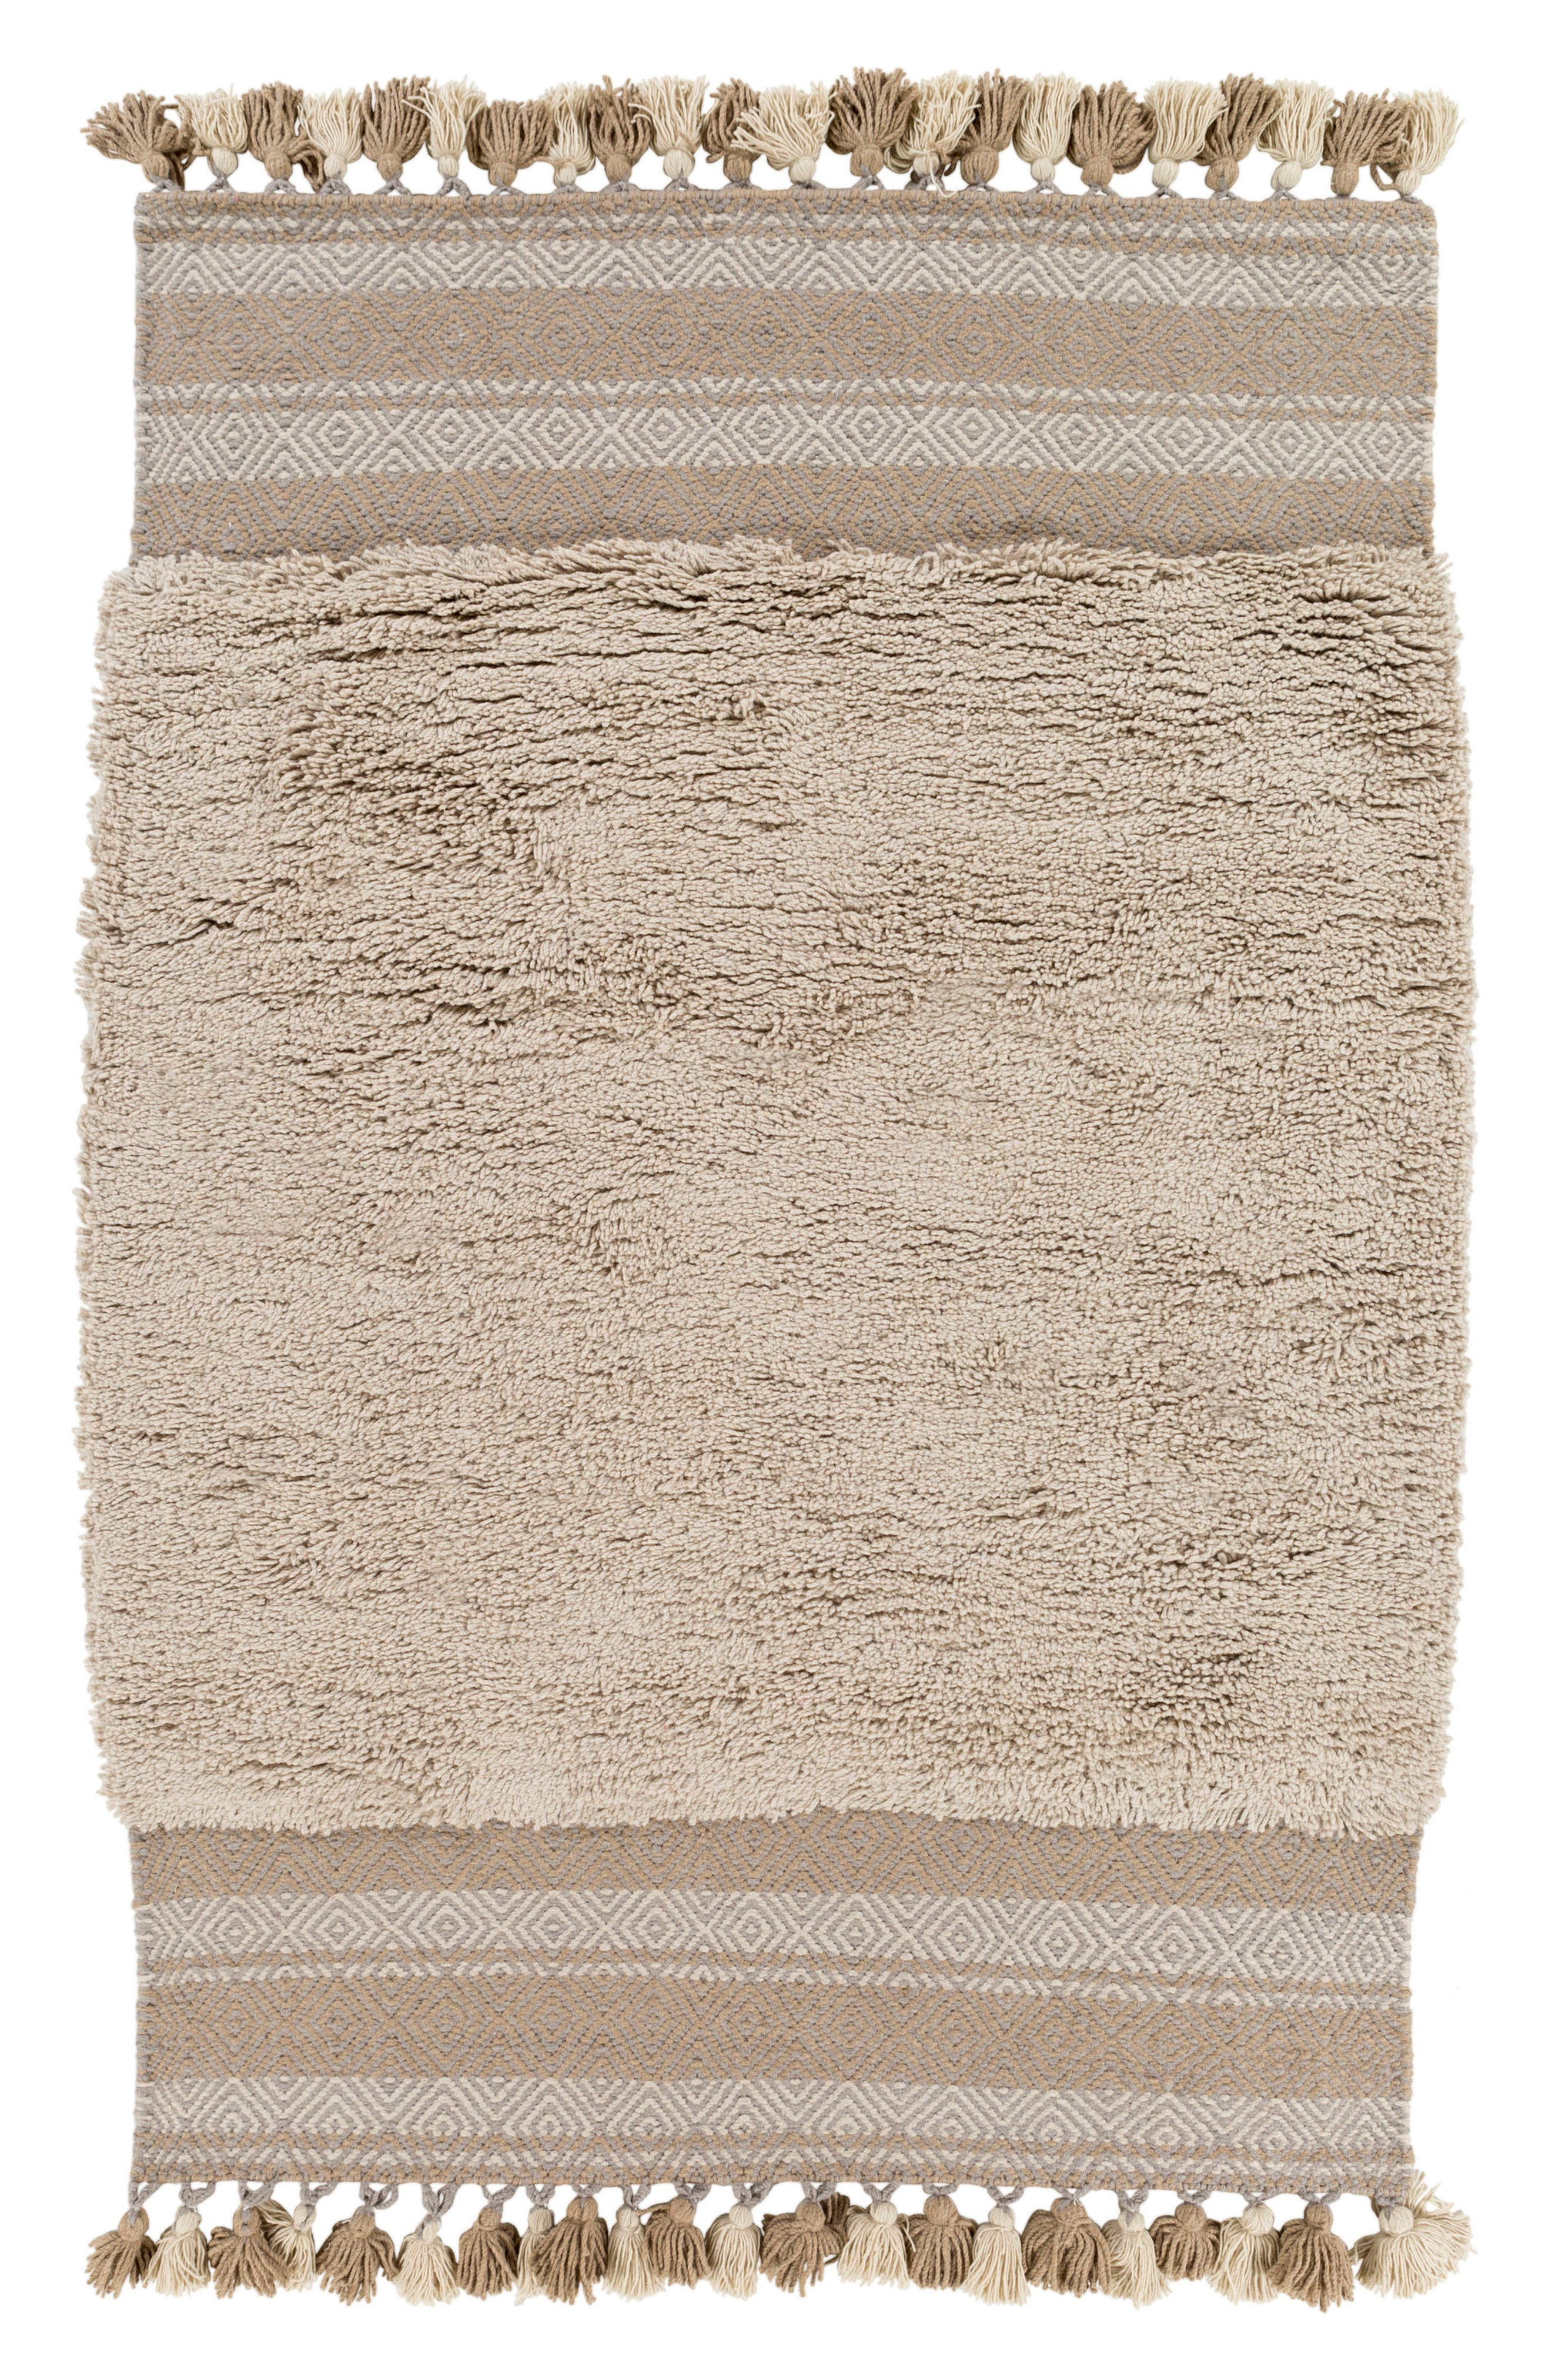 Korva Modern Handwoven Rug,                             Main thumbnail 1, color,